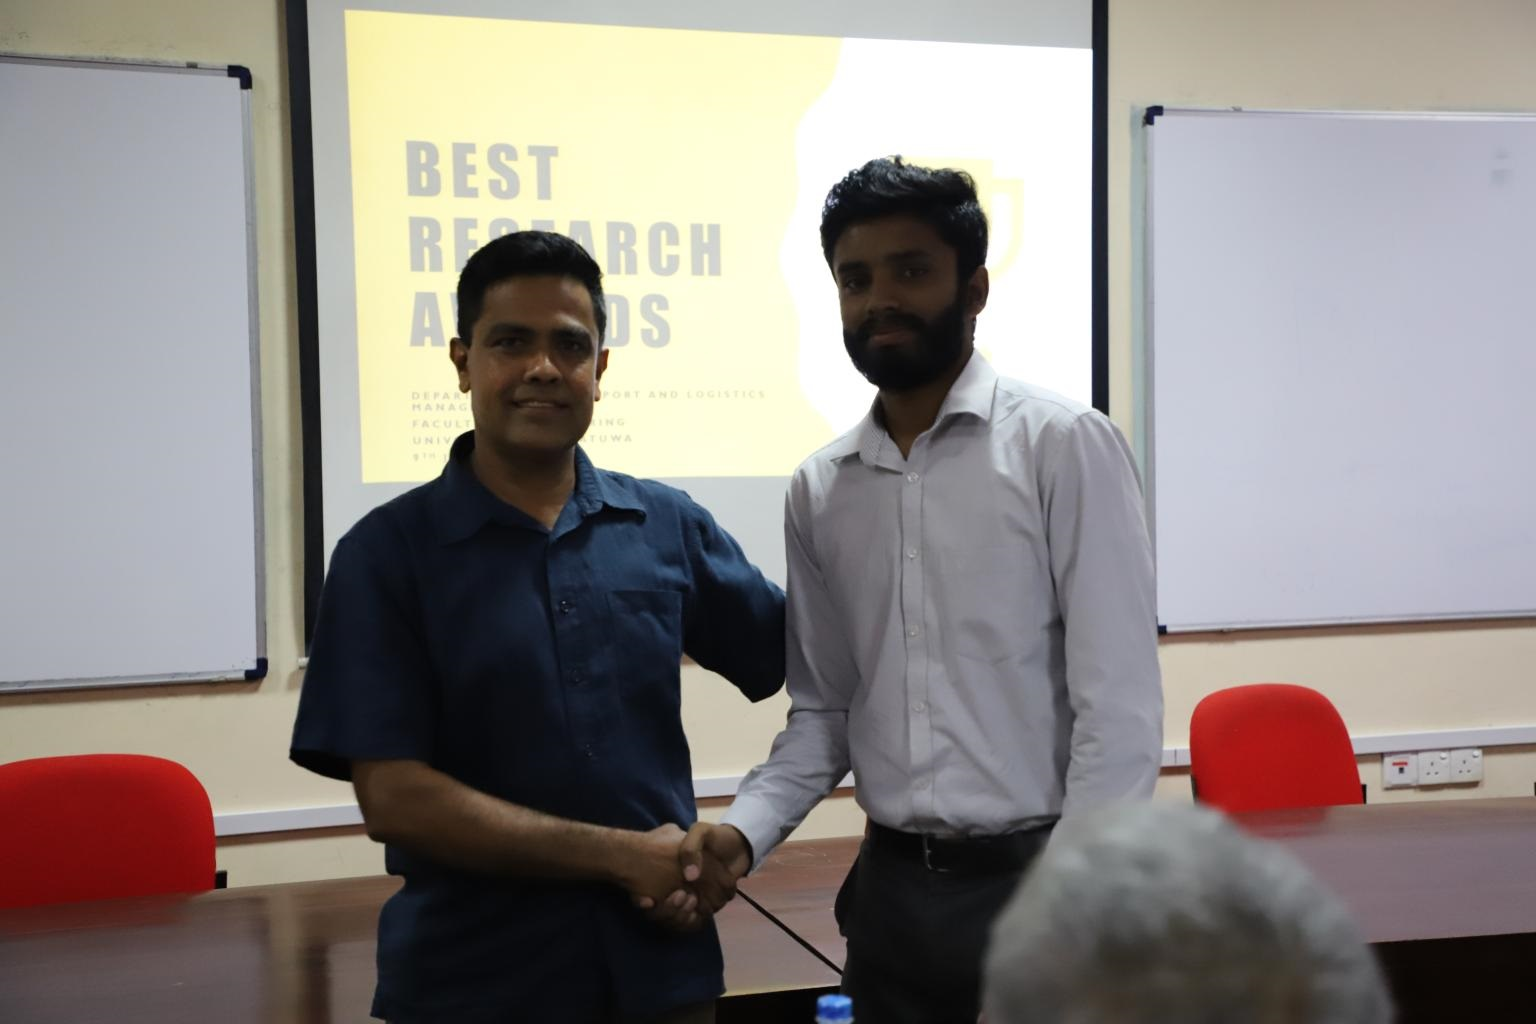 Best Research Presentations